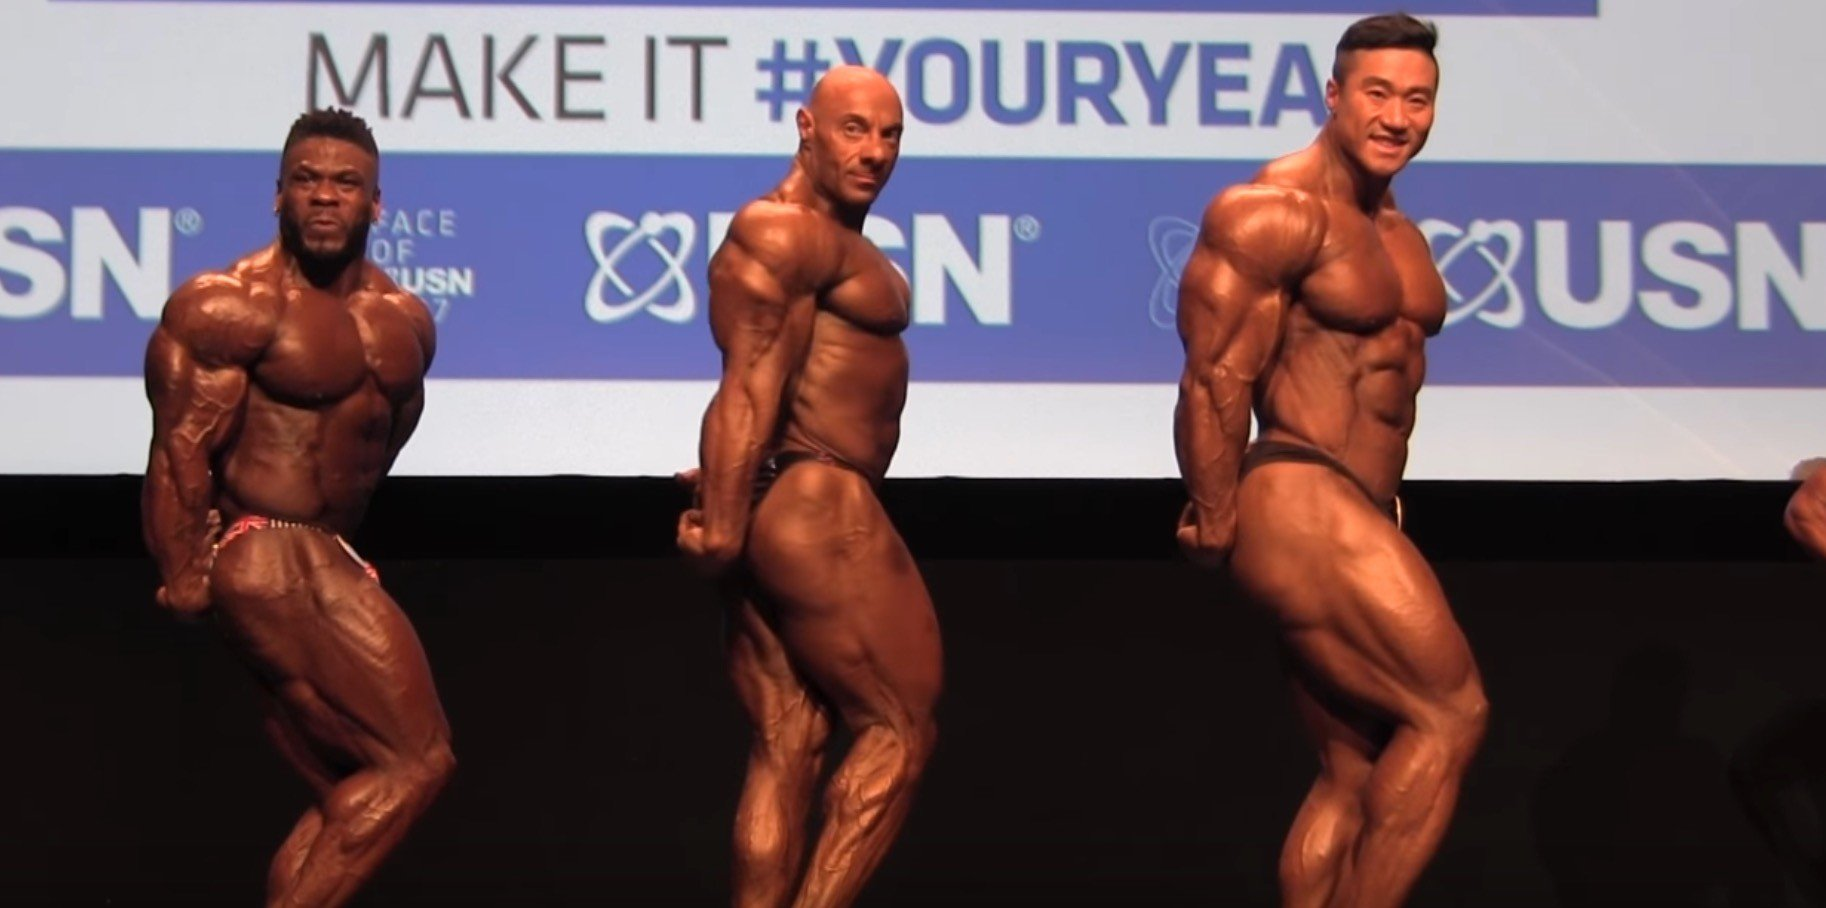 2017 NABBA Mr. Universe Men's Pro Finals